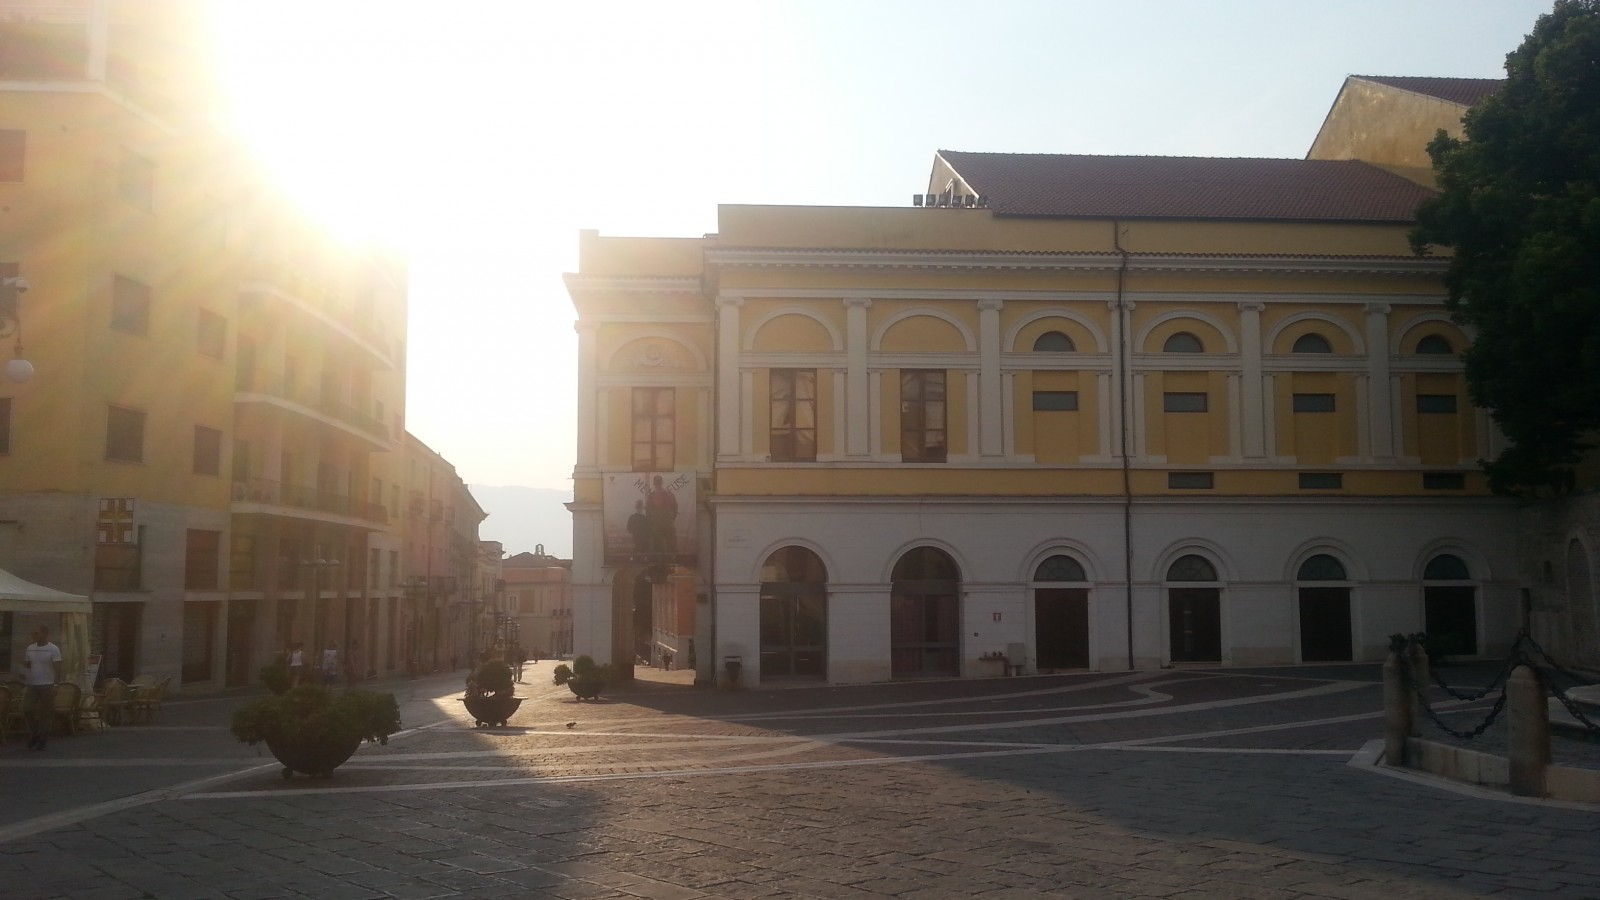 Benevento| Gestione Teatro Comunale, work in progress